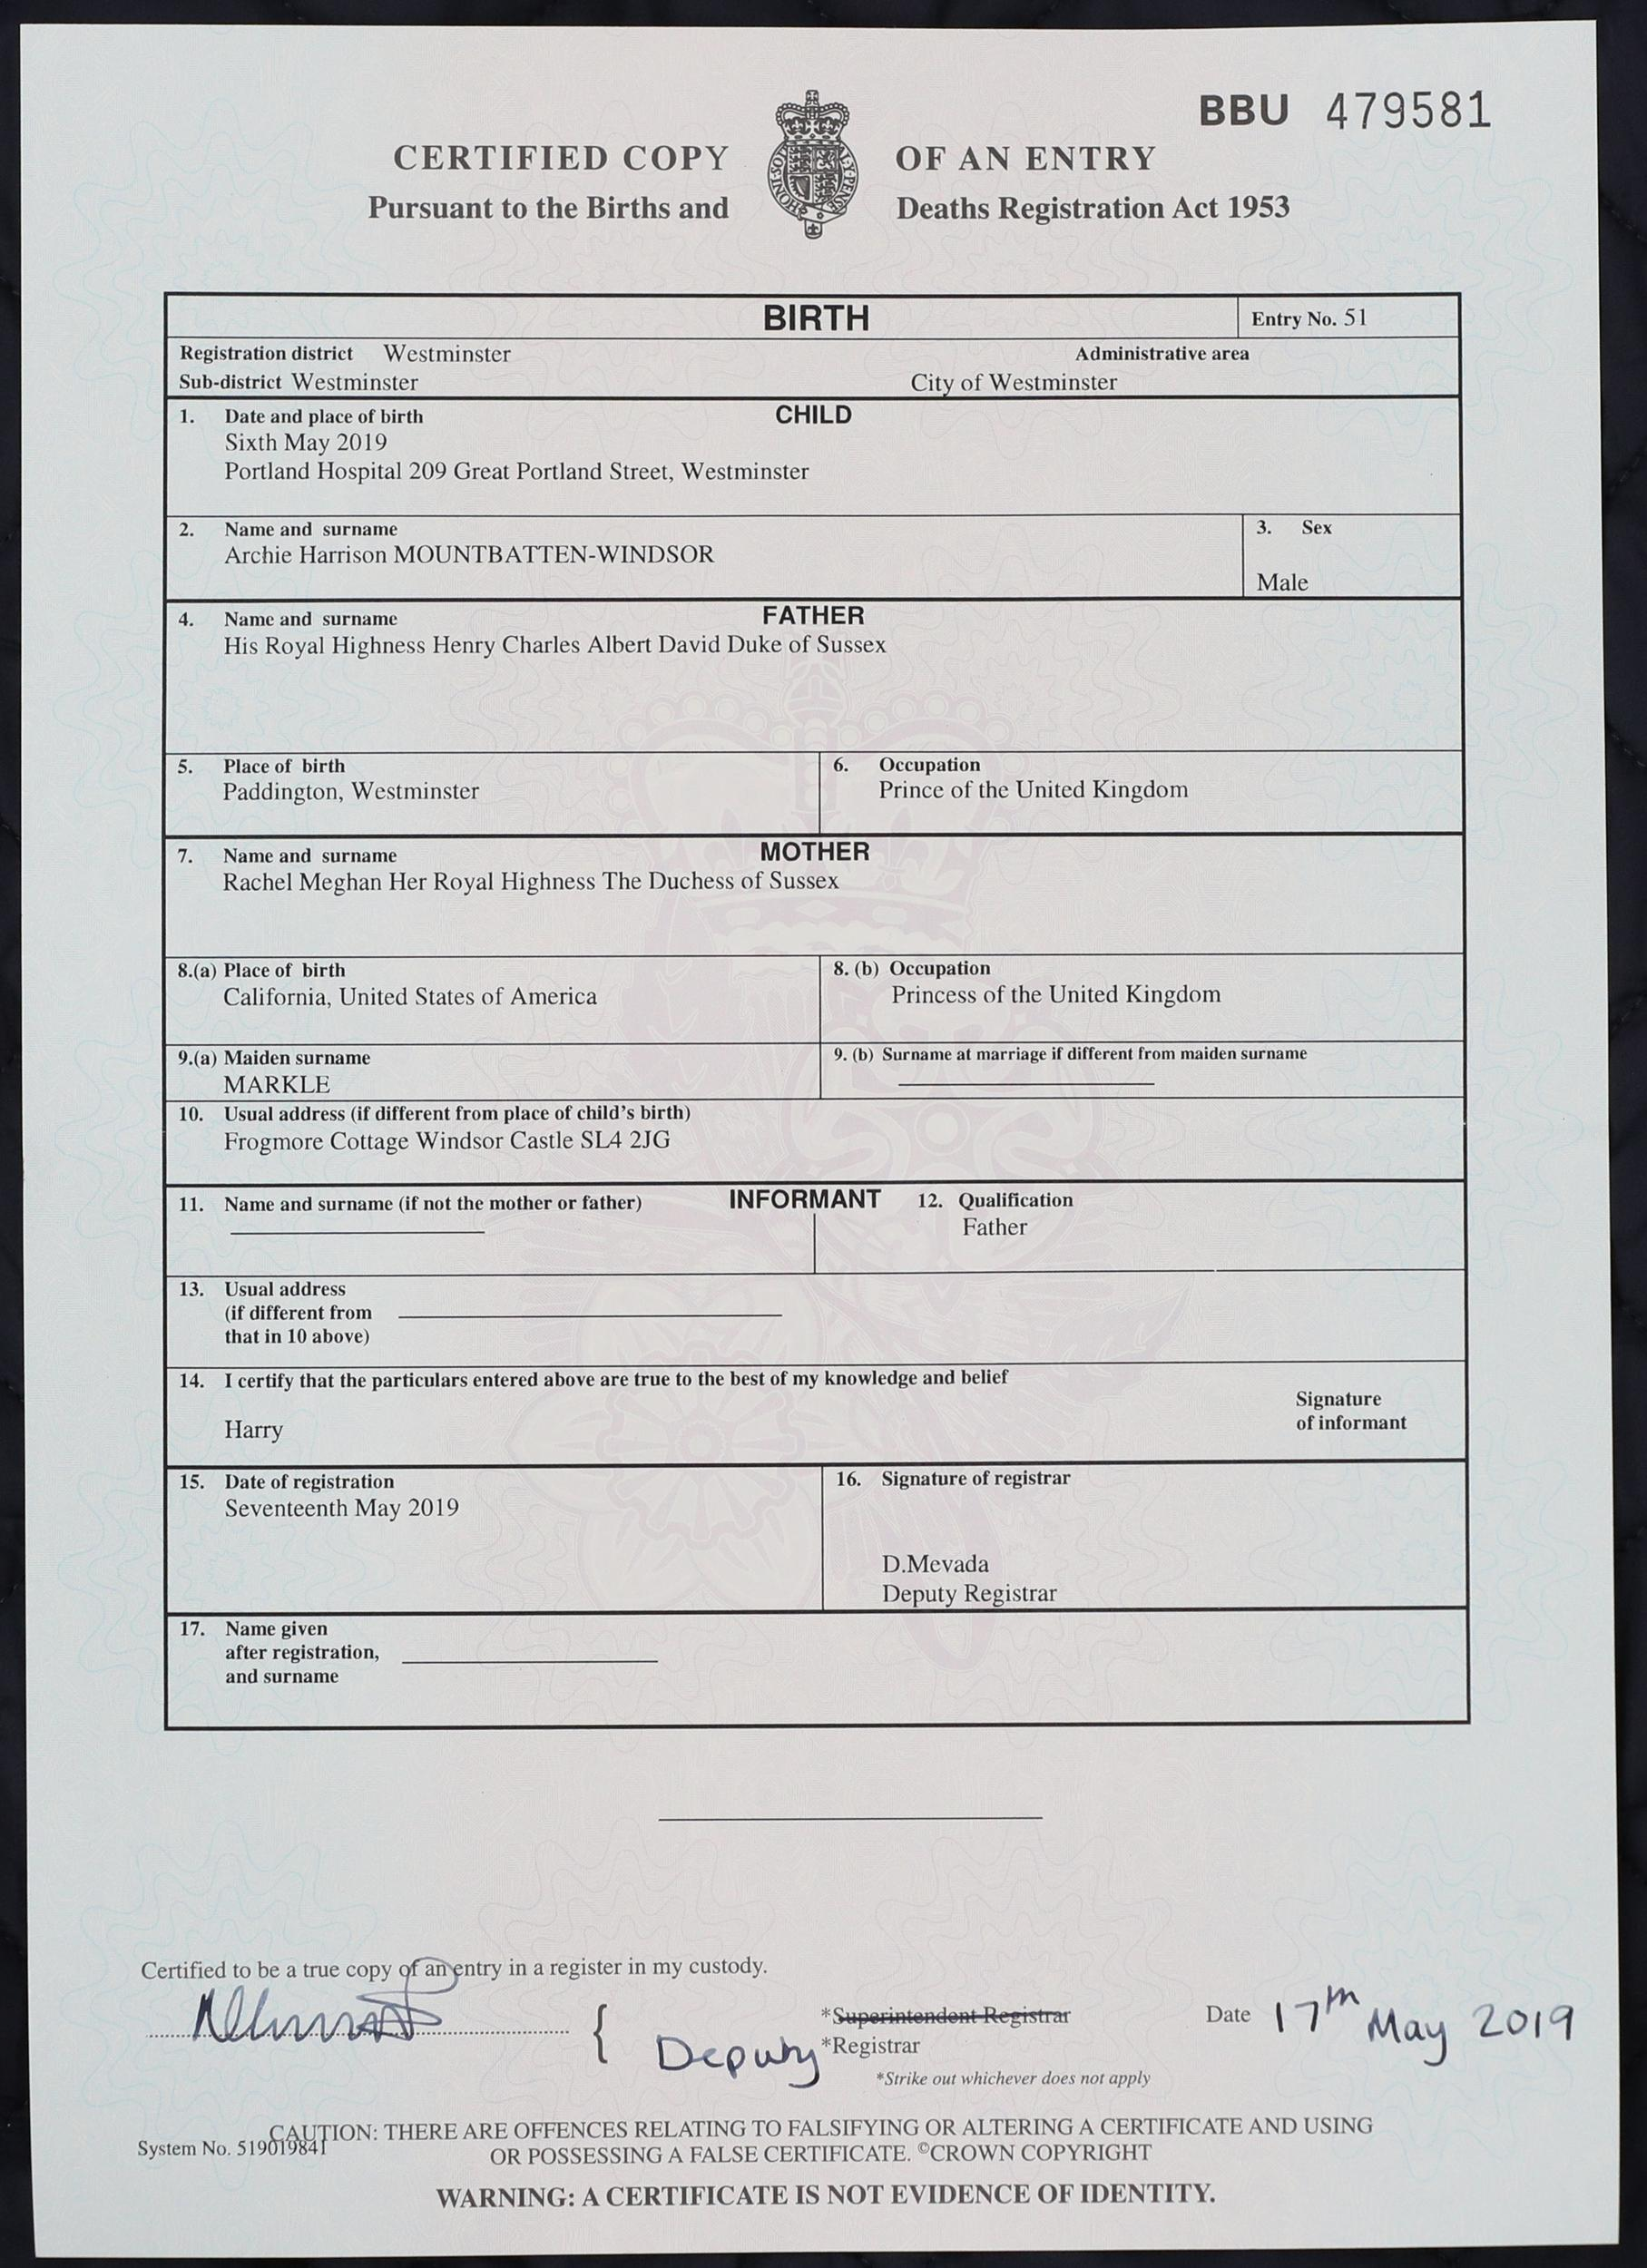 The birth certificate of Archie Harrison Mountbatten-Windsor, son of the Duke and Duchess of Sussex, who was born at the Portland Hospital in London.